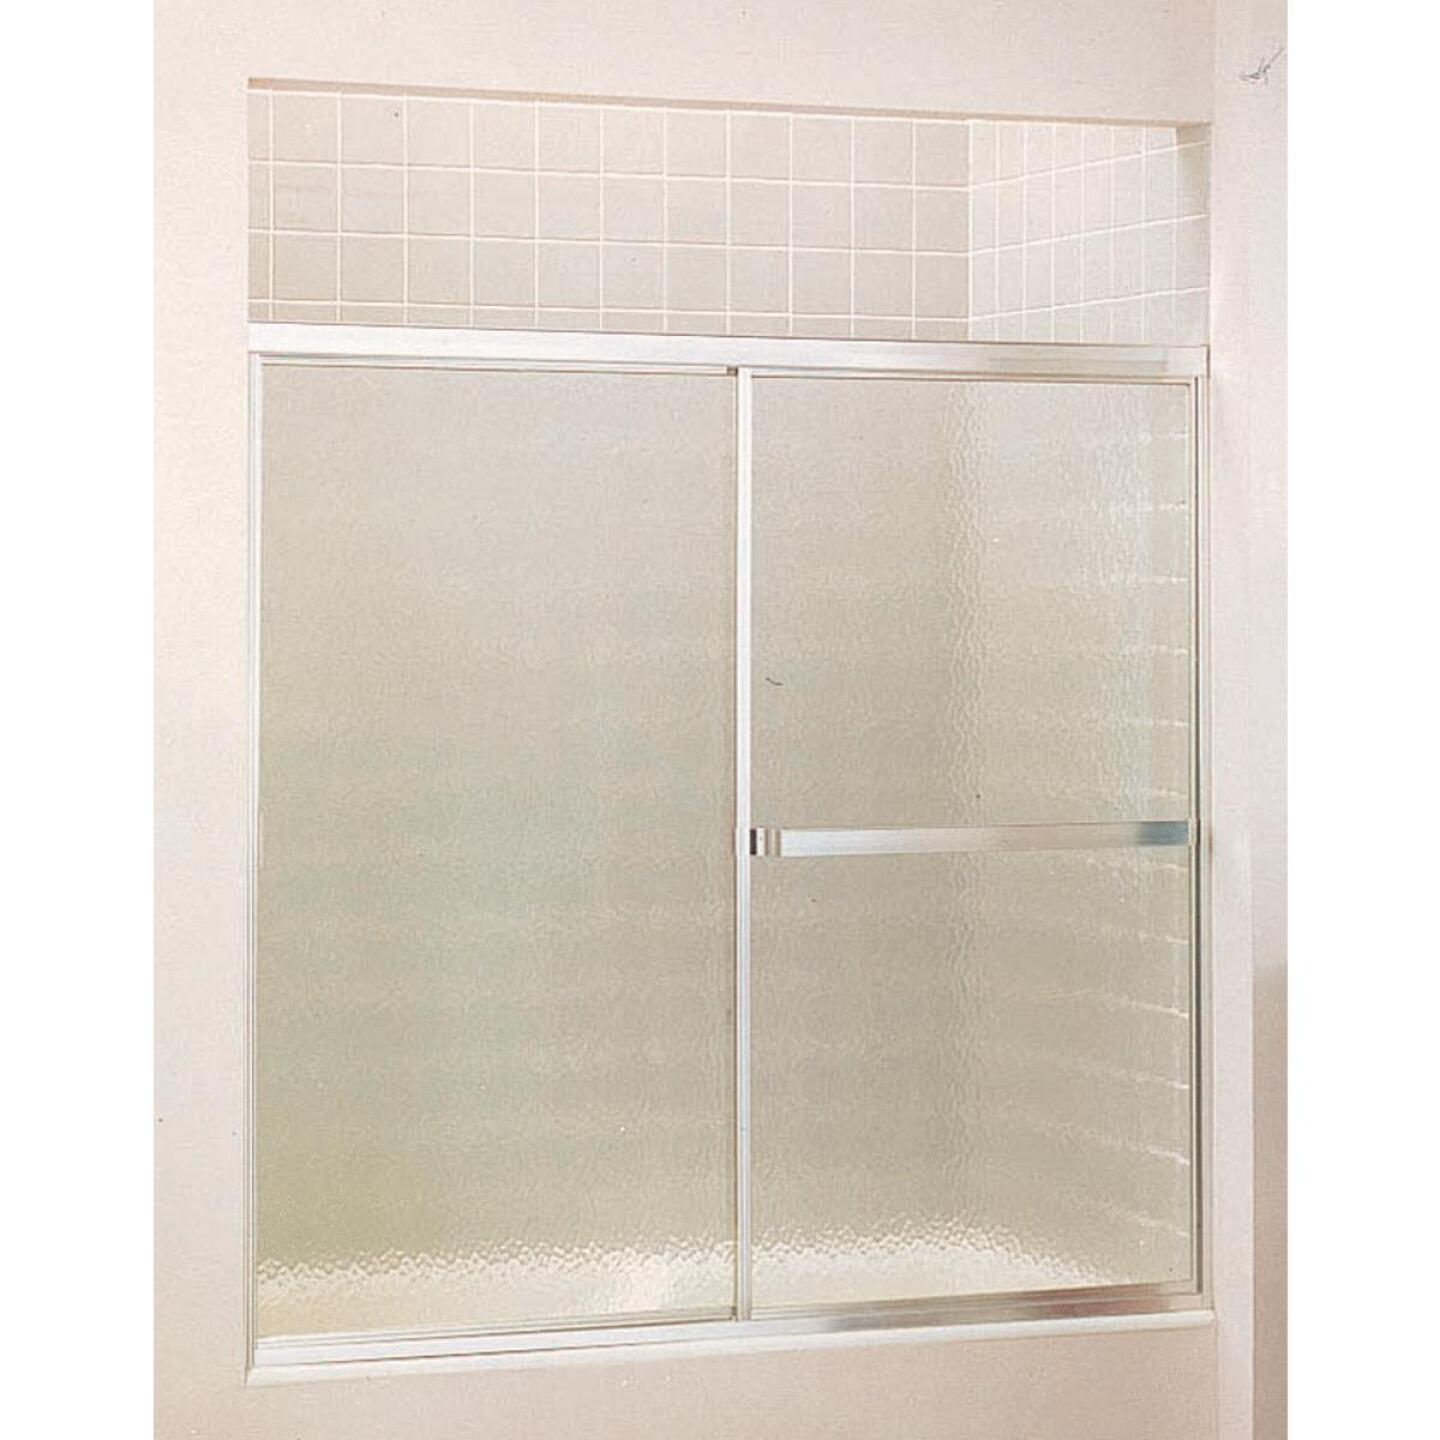 Sterling Standard 59 In. W. x 56-7/16 In. H. Chrome Hammered Glass Sliding Tub Door Image 1